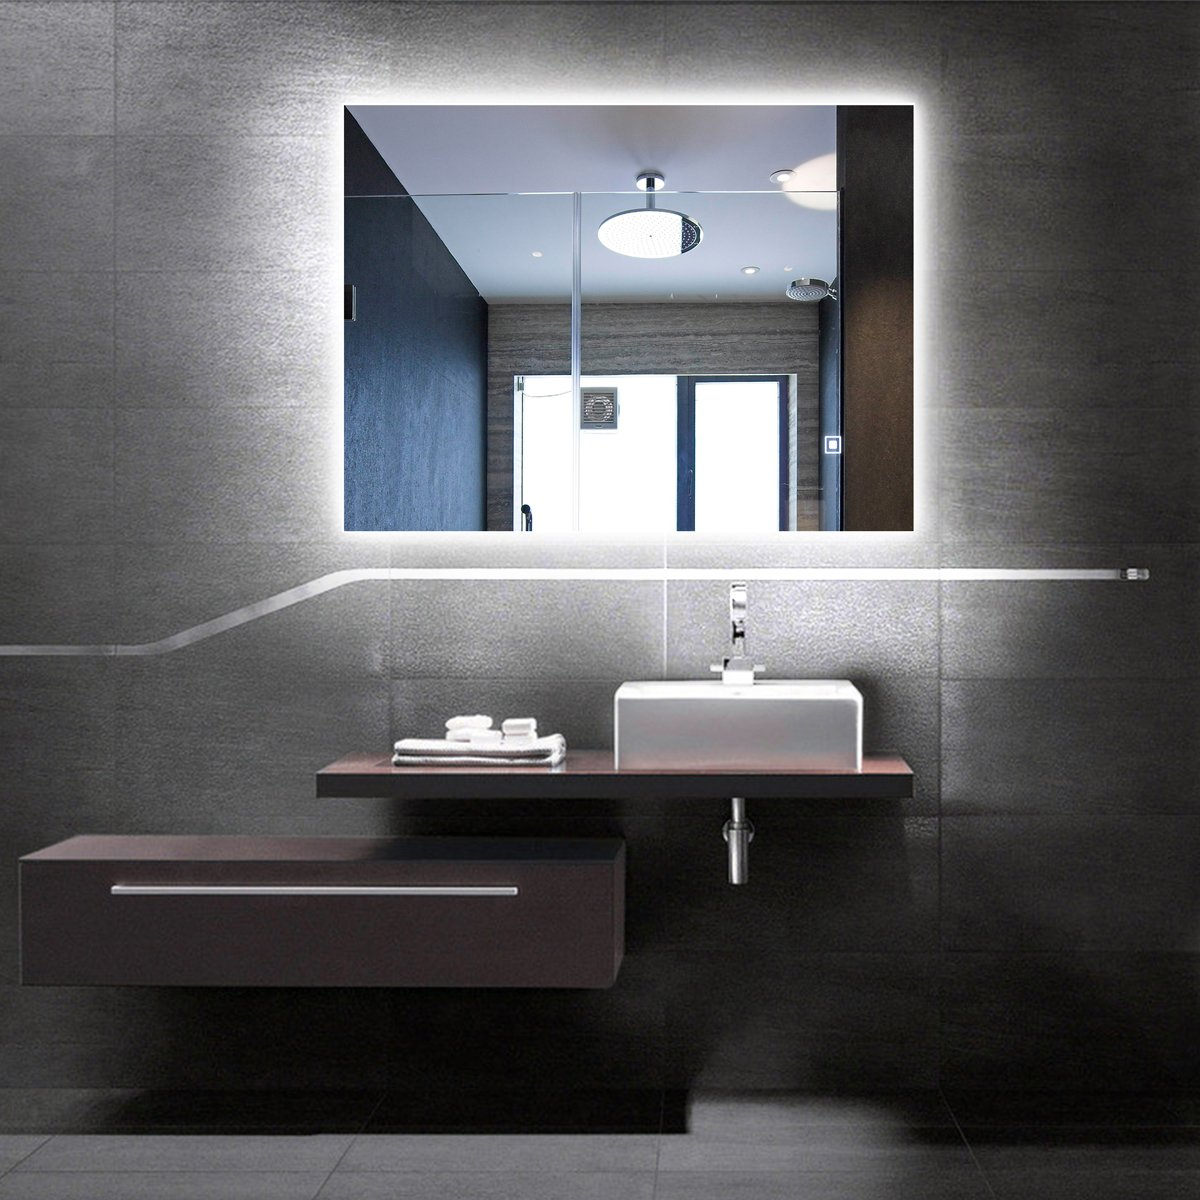 Illuminated Mirrors Bathroom: Alice Dimmable LED Backlit Mirror Illuminated Bathroom